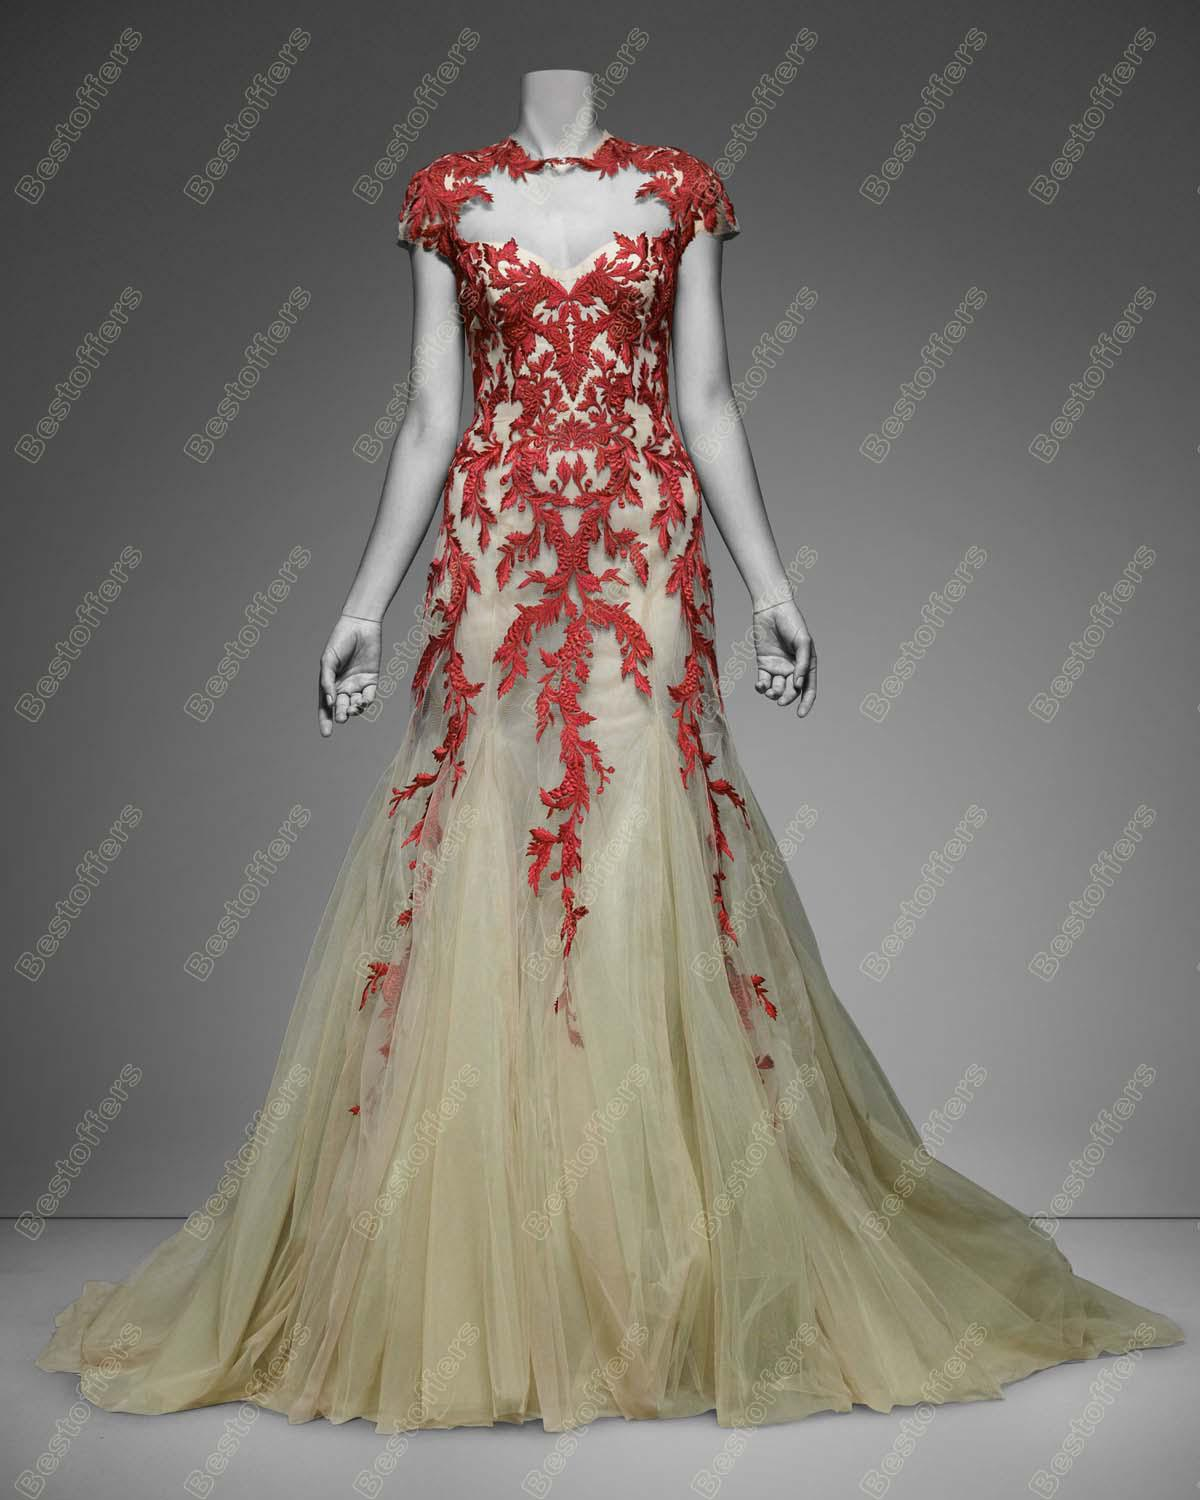 Custom made 85th oscar awards celebrity dress red lace appliques